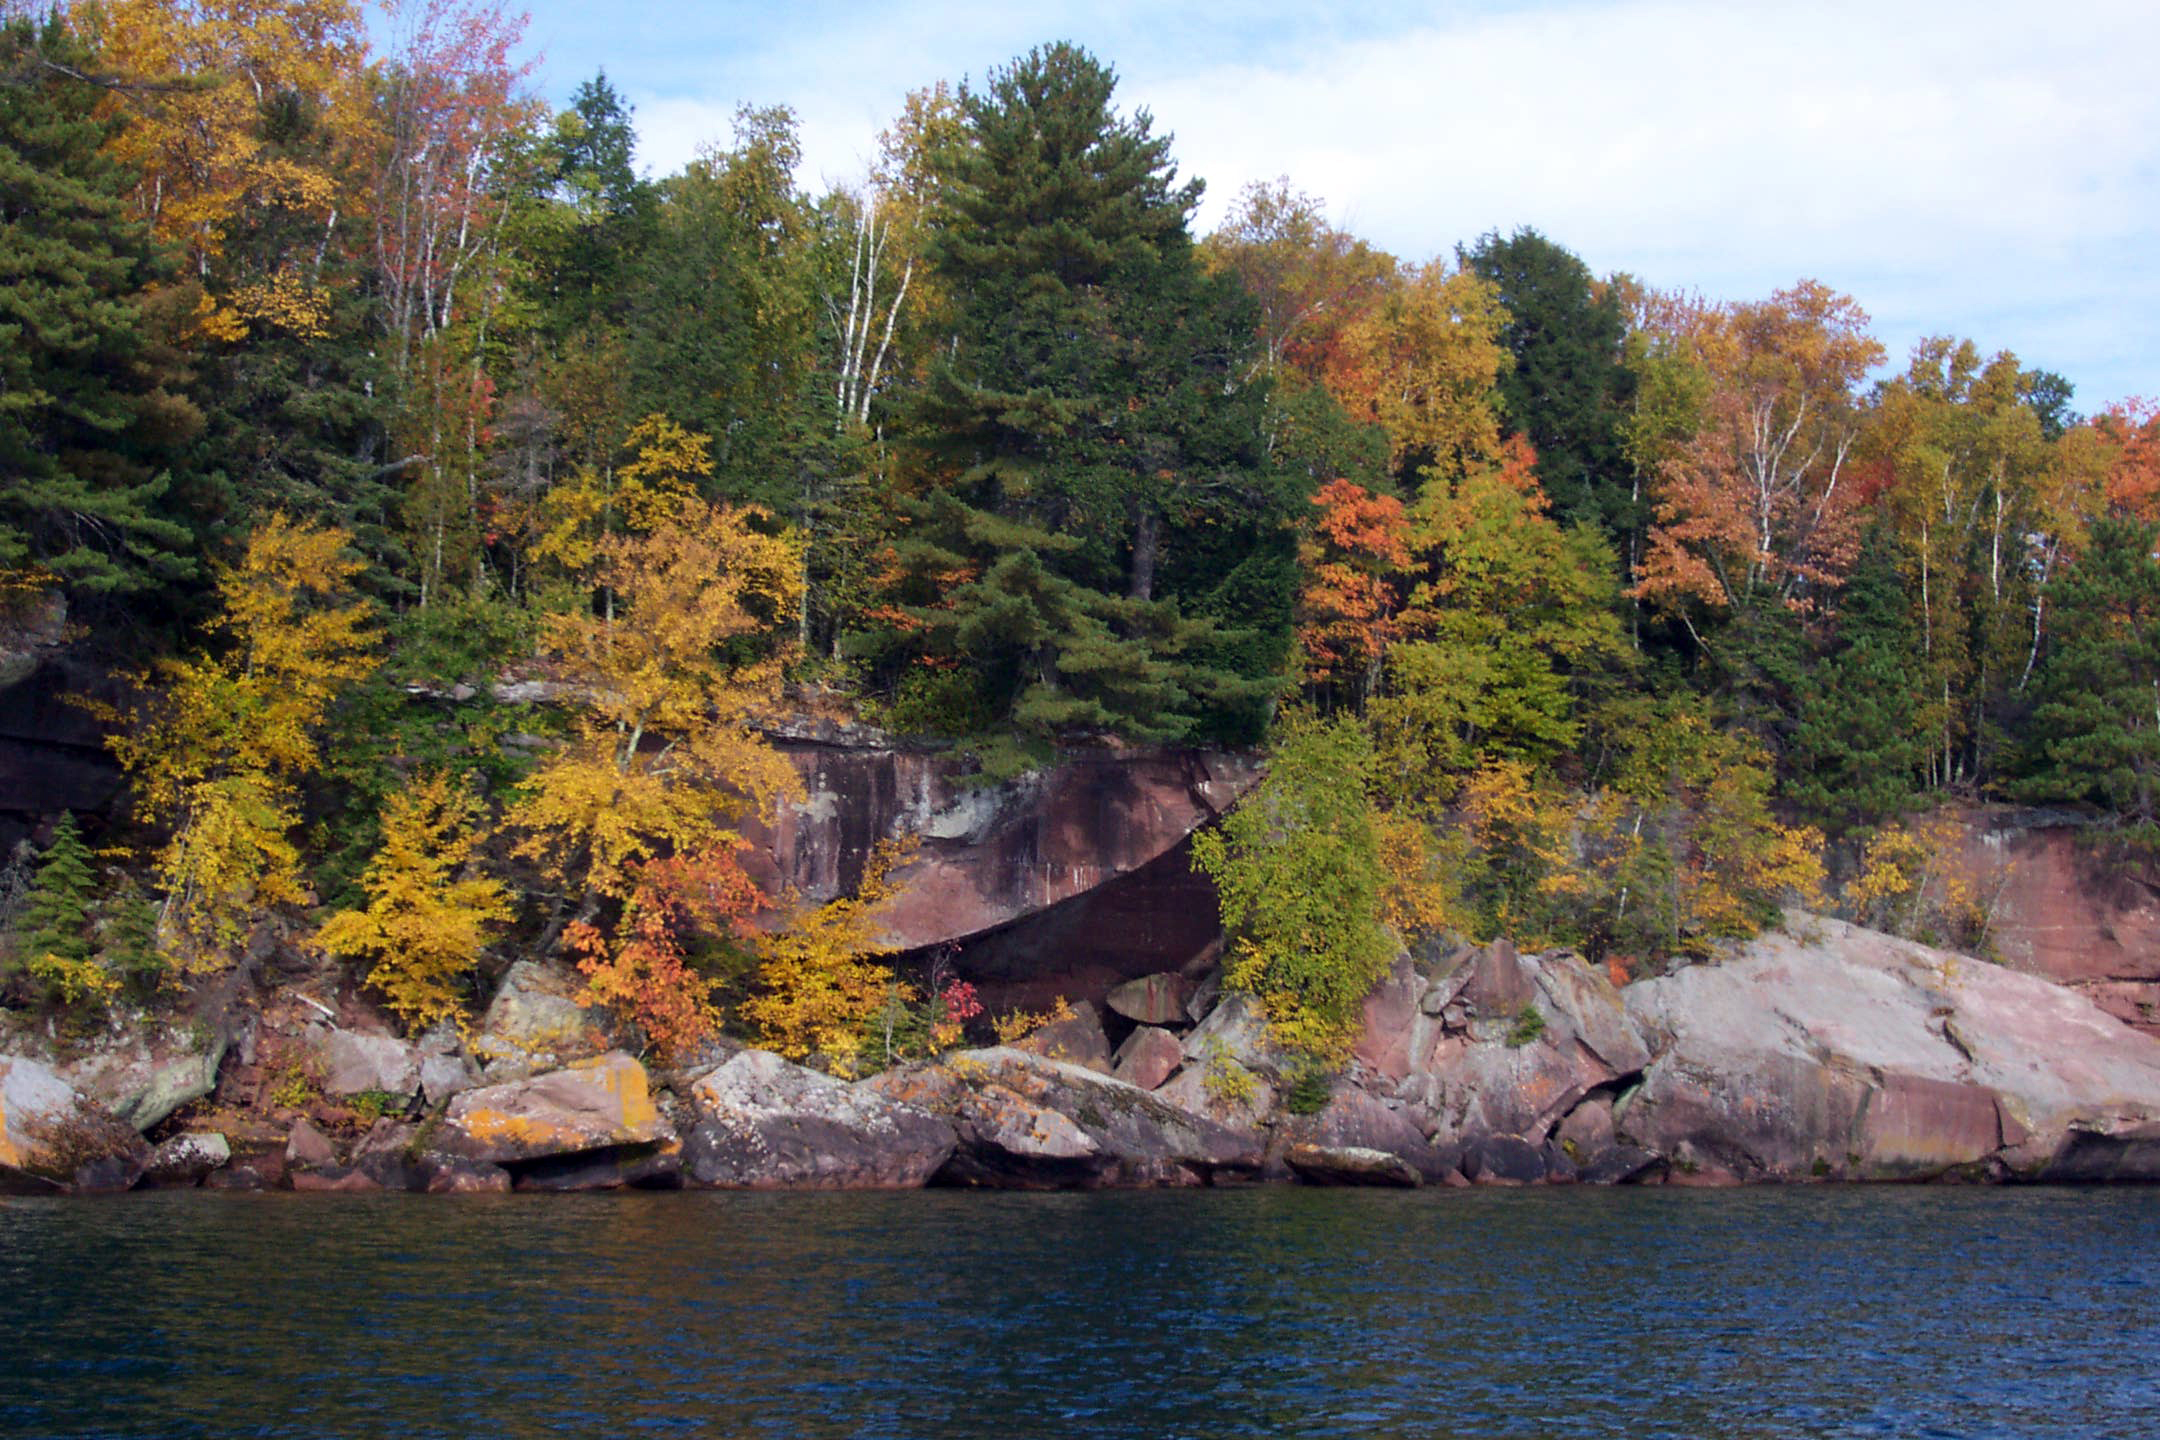 Fall colors in the islands